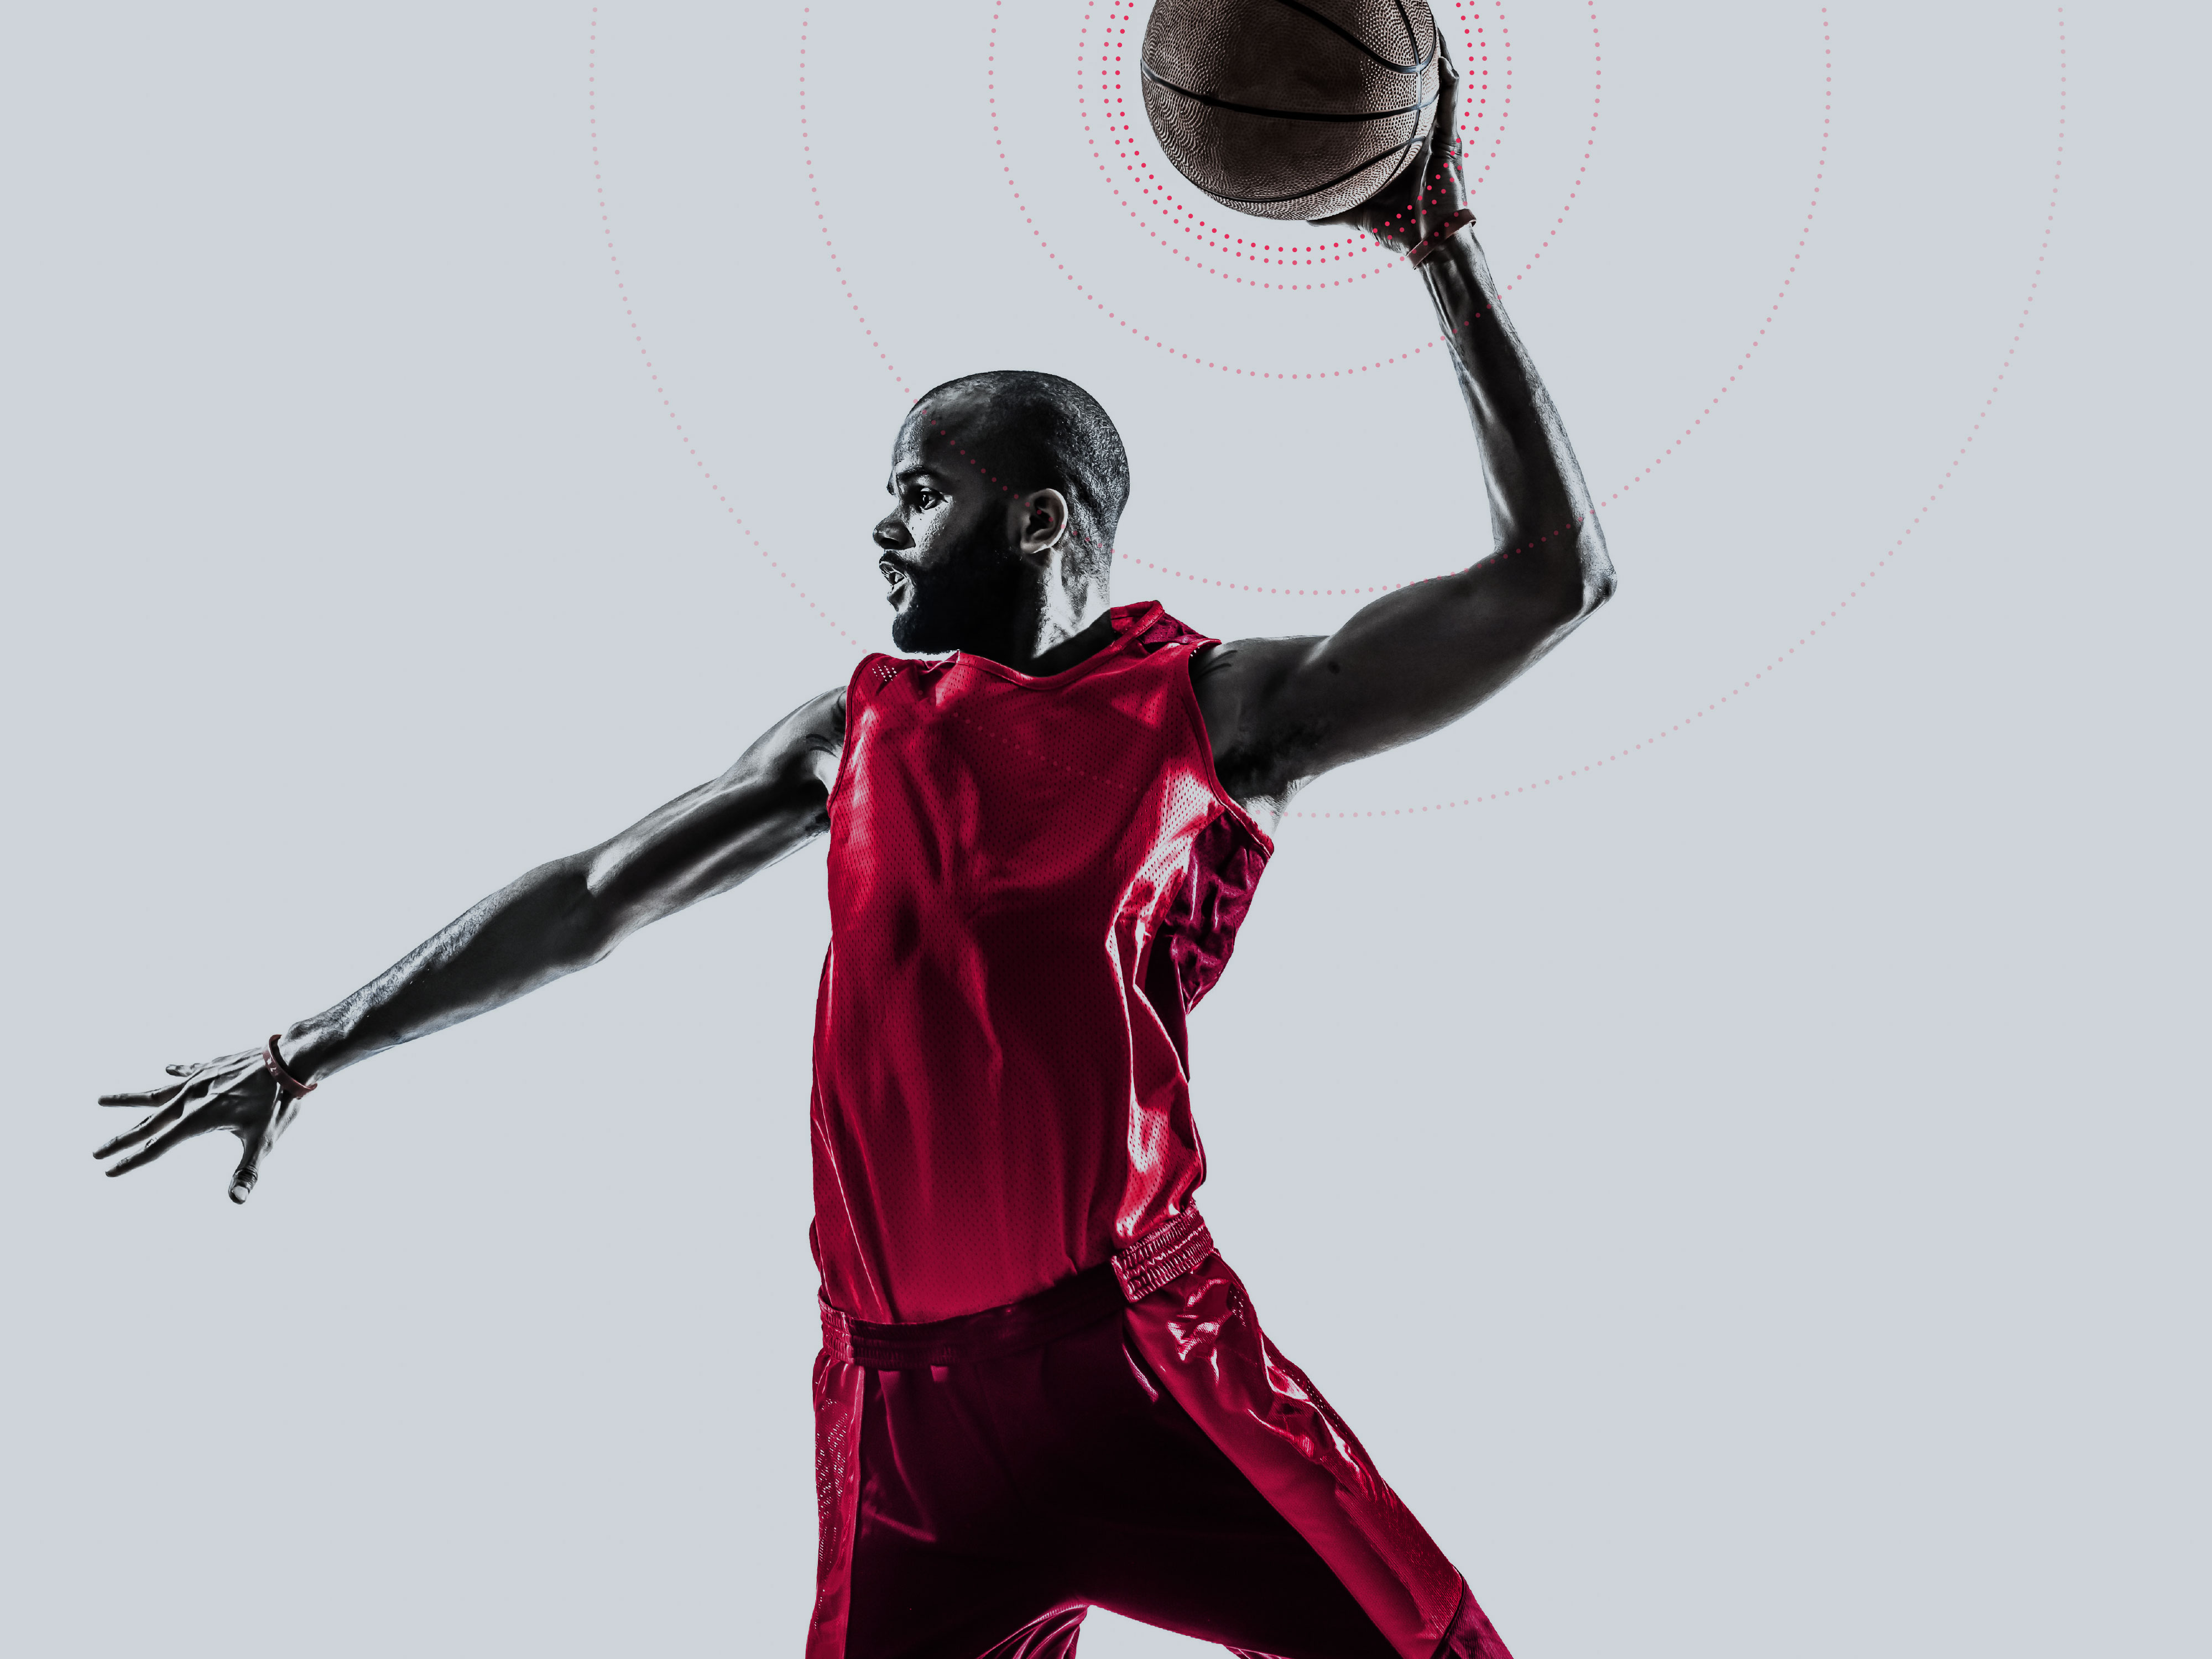 MF-basketballstar-greybackground.jpg